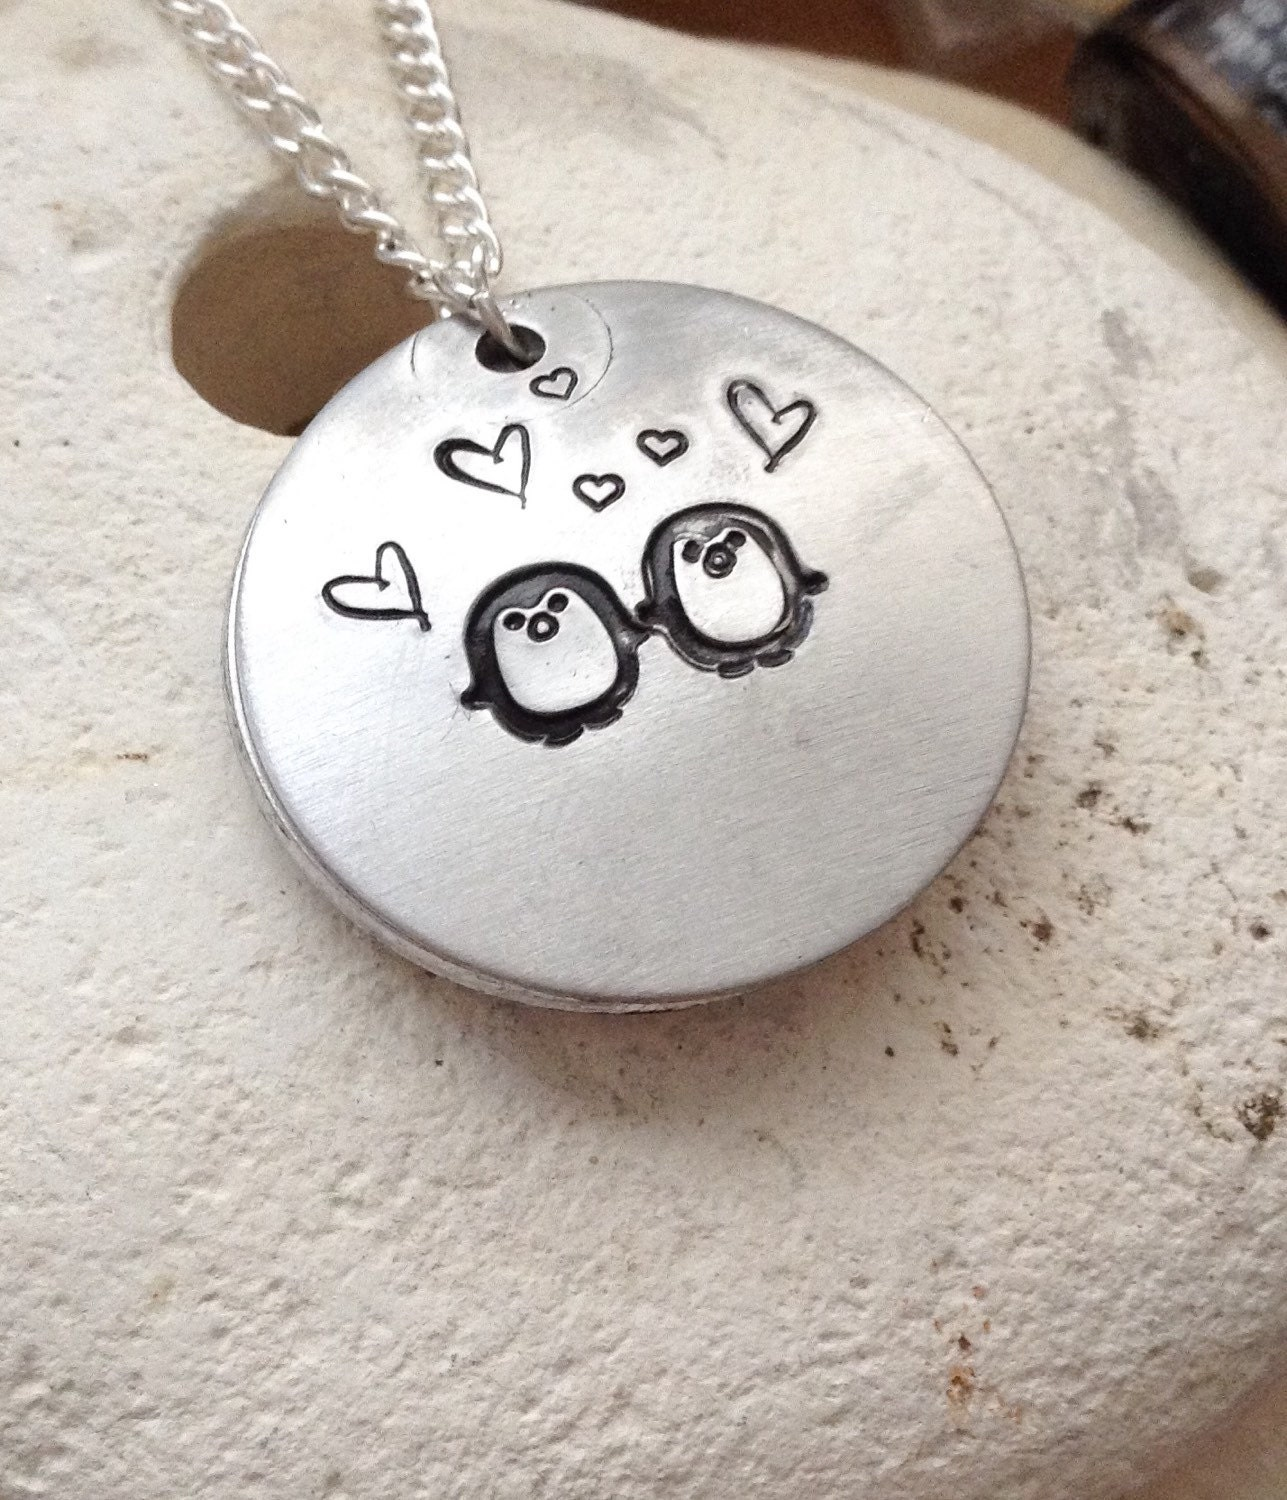 You are my penguin love locket. Open clamshell style necklace. Gifts for her - valentines gift, girlfriend gifts - cute necklace